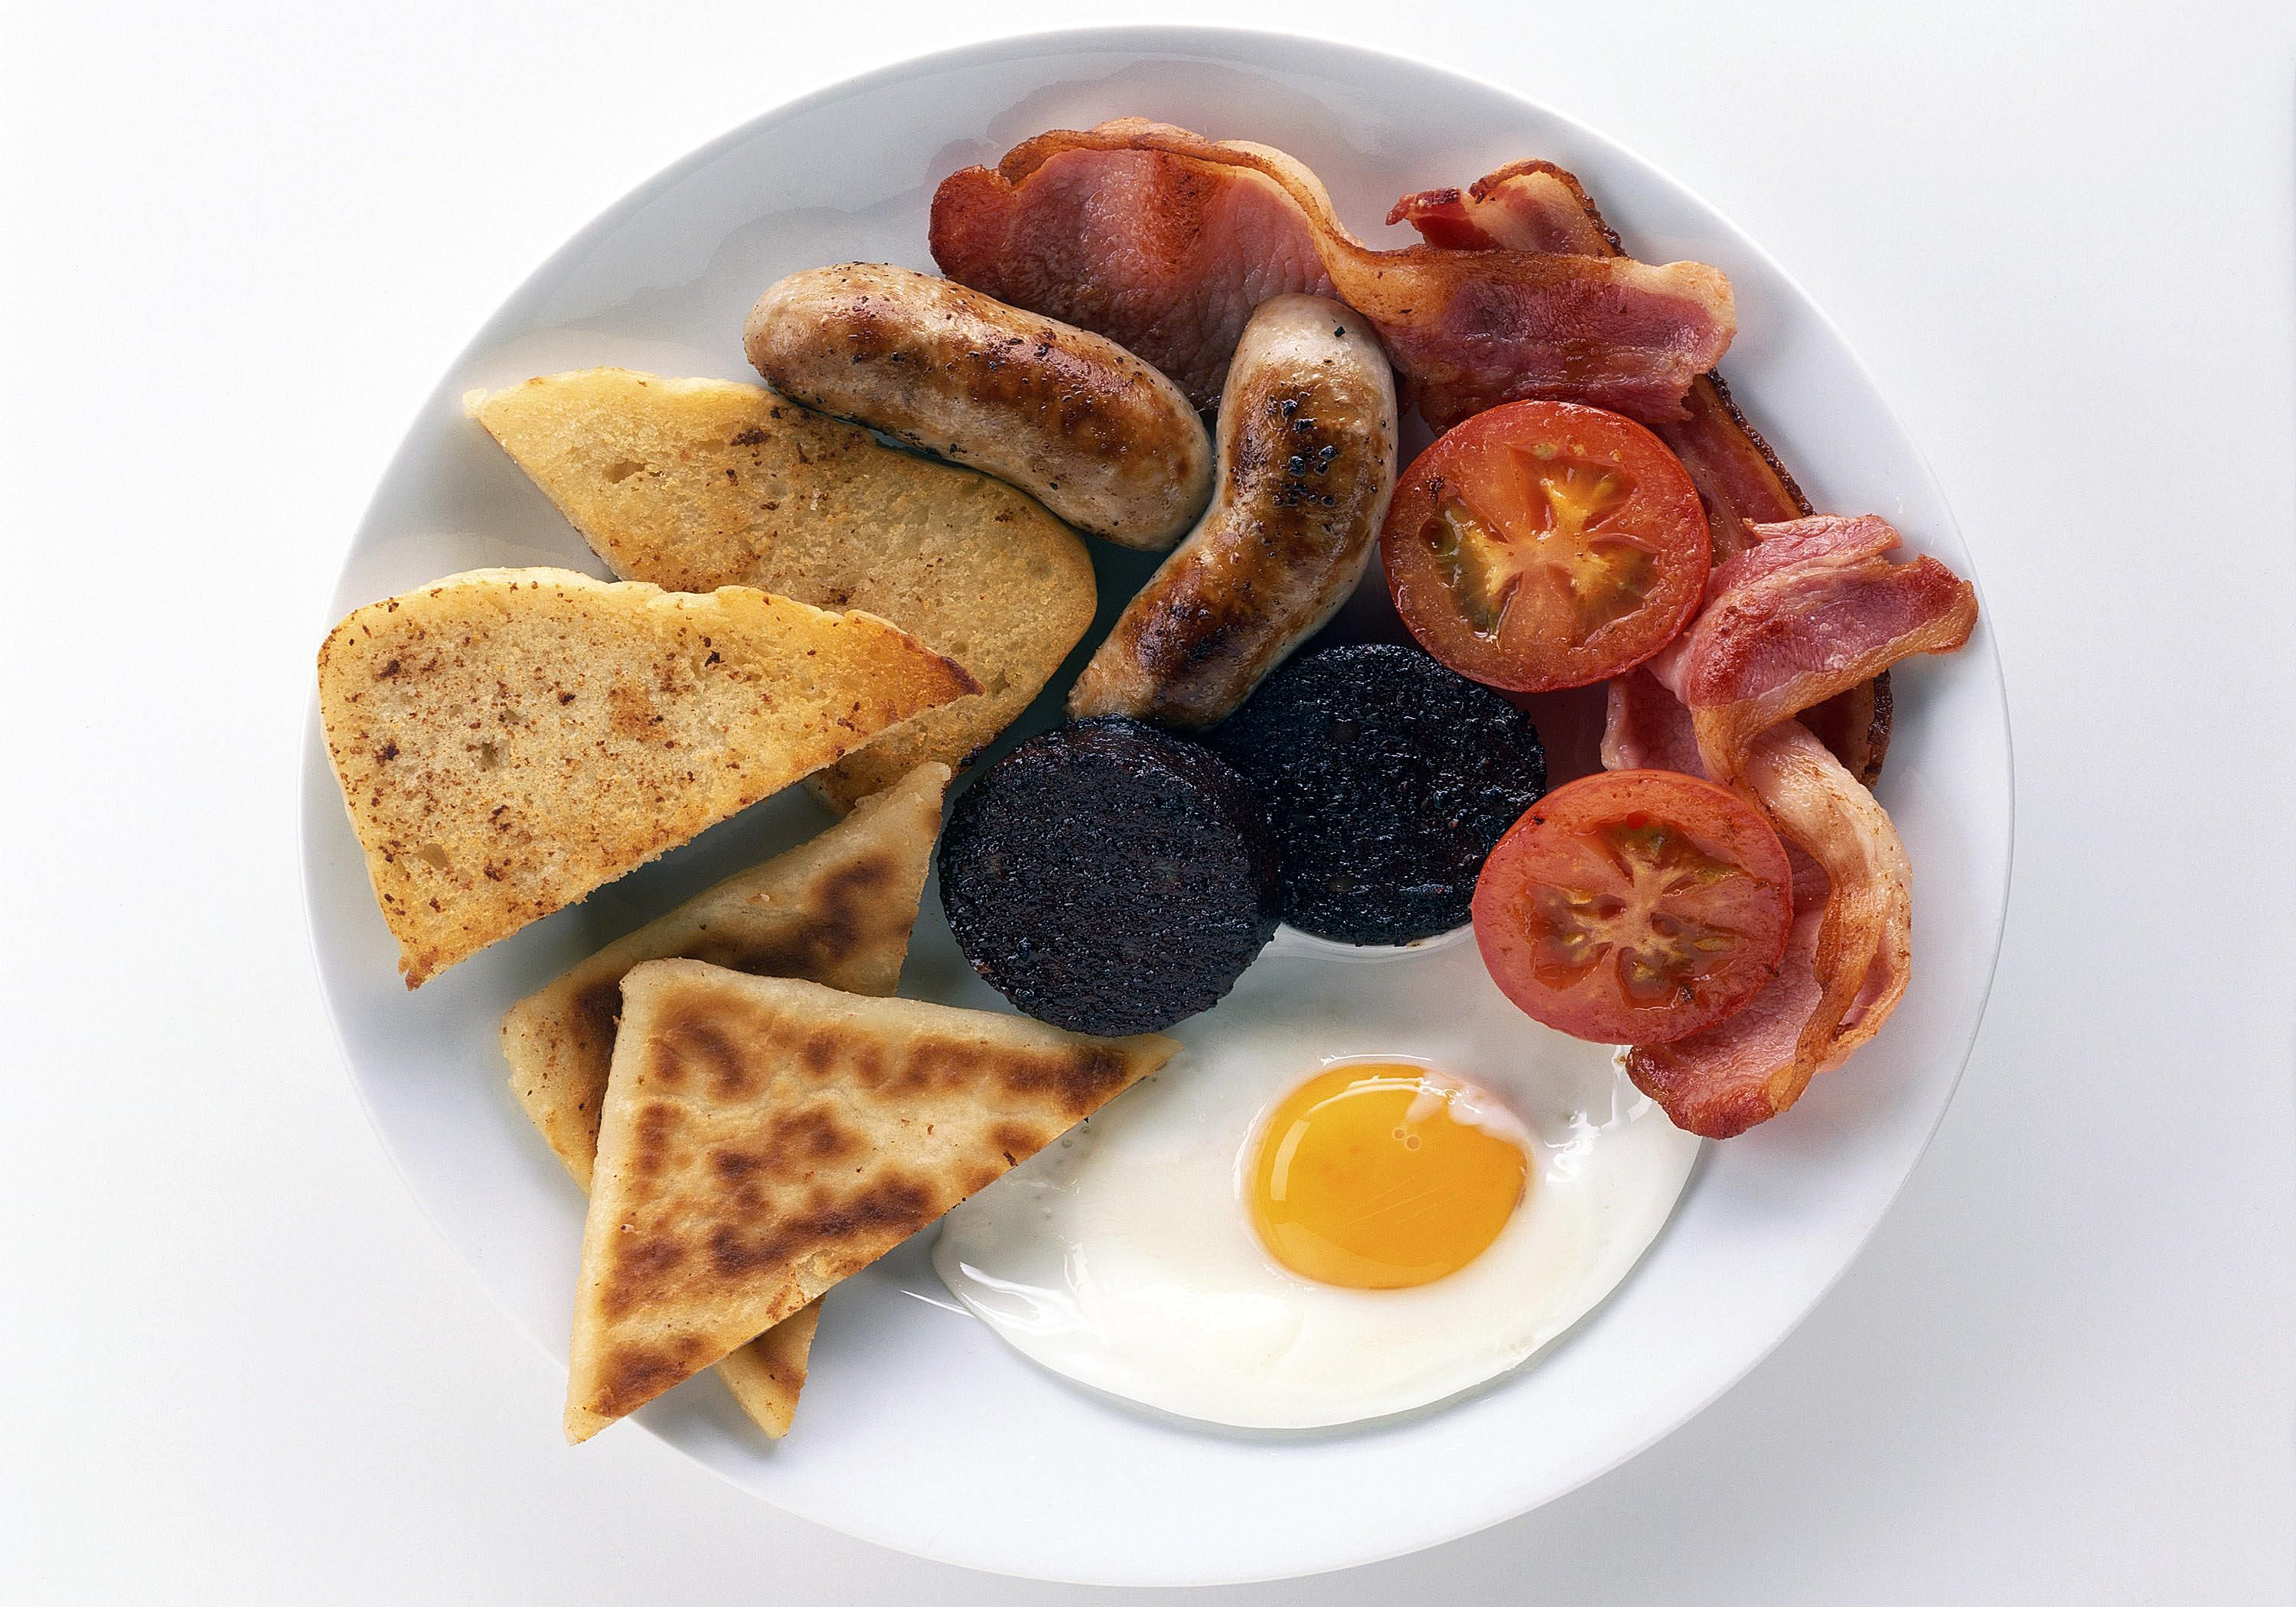 What Makes Up A Full Irish Breakfast